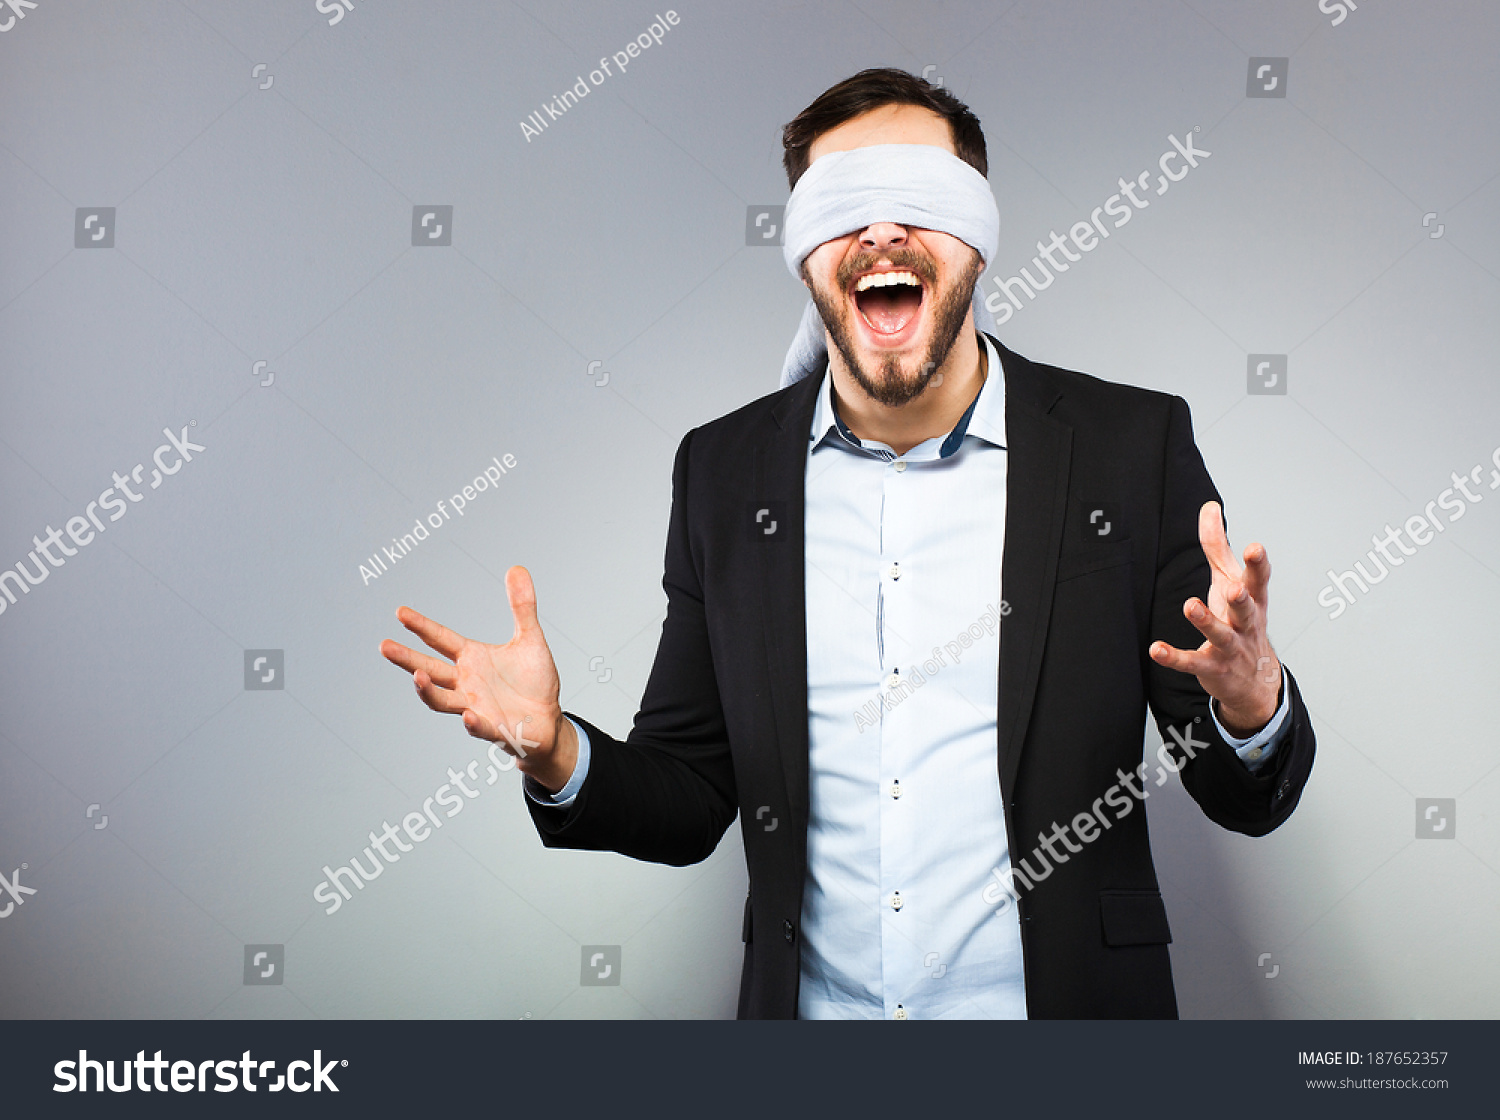 stock-photo-excited-blindfolded-man-in-b